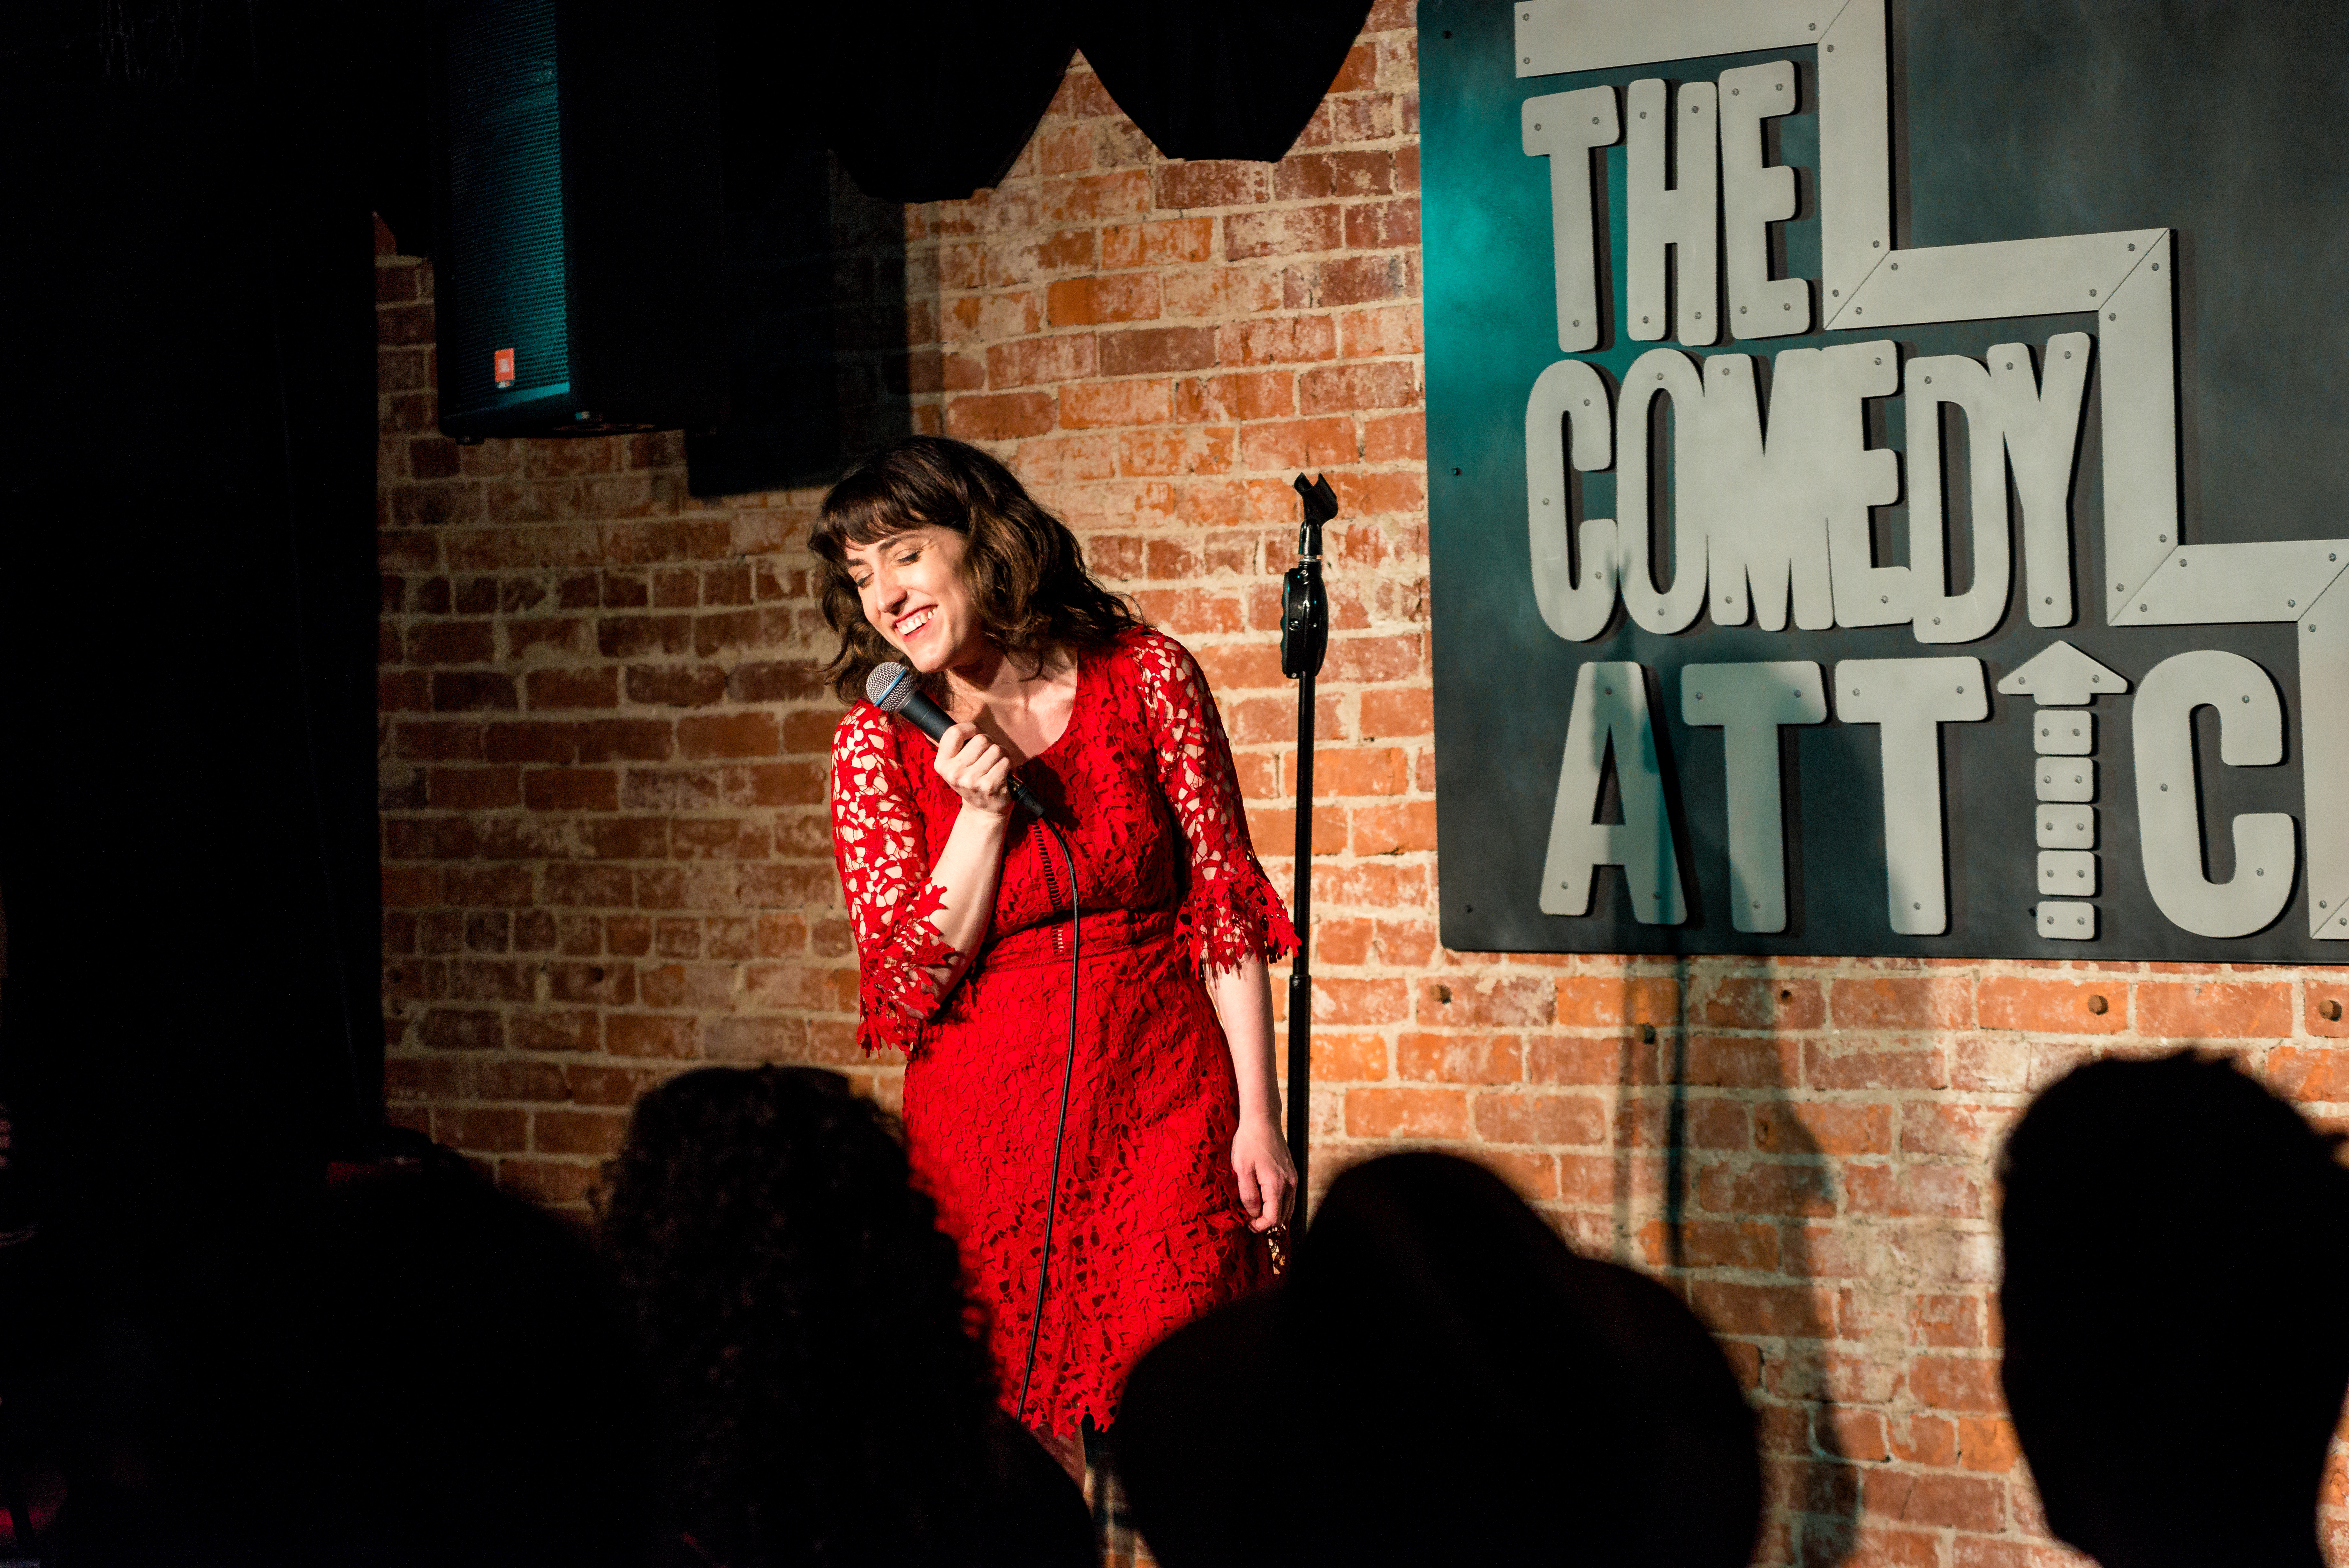 Kate Willett at Comedy Attic